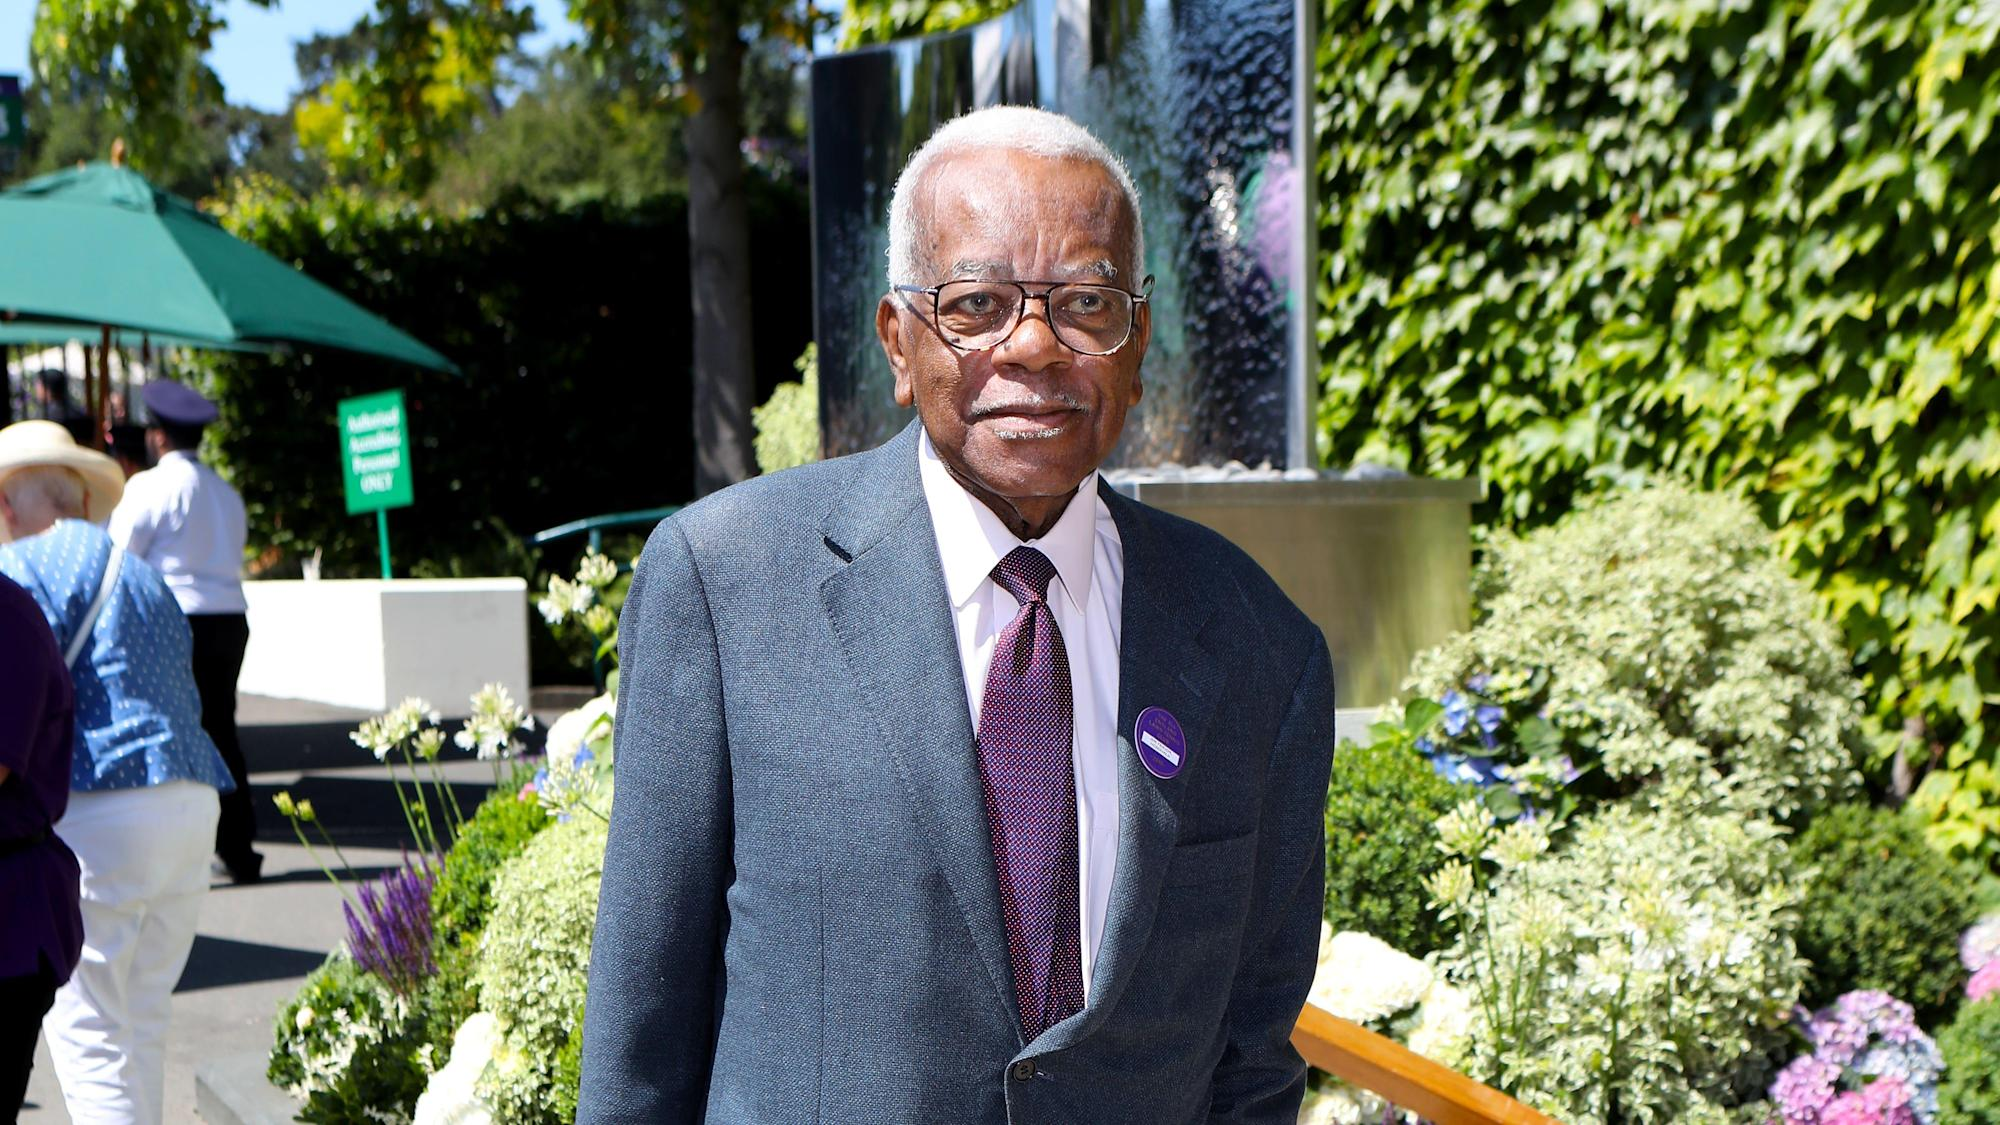 Sir Trevor McDonald and Charlene White to front George Floyd documentary